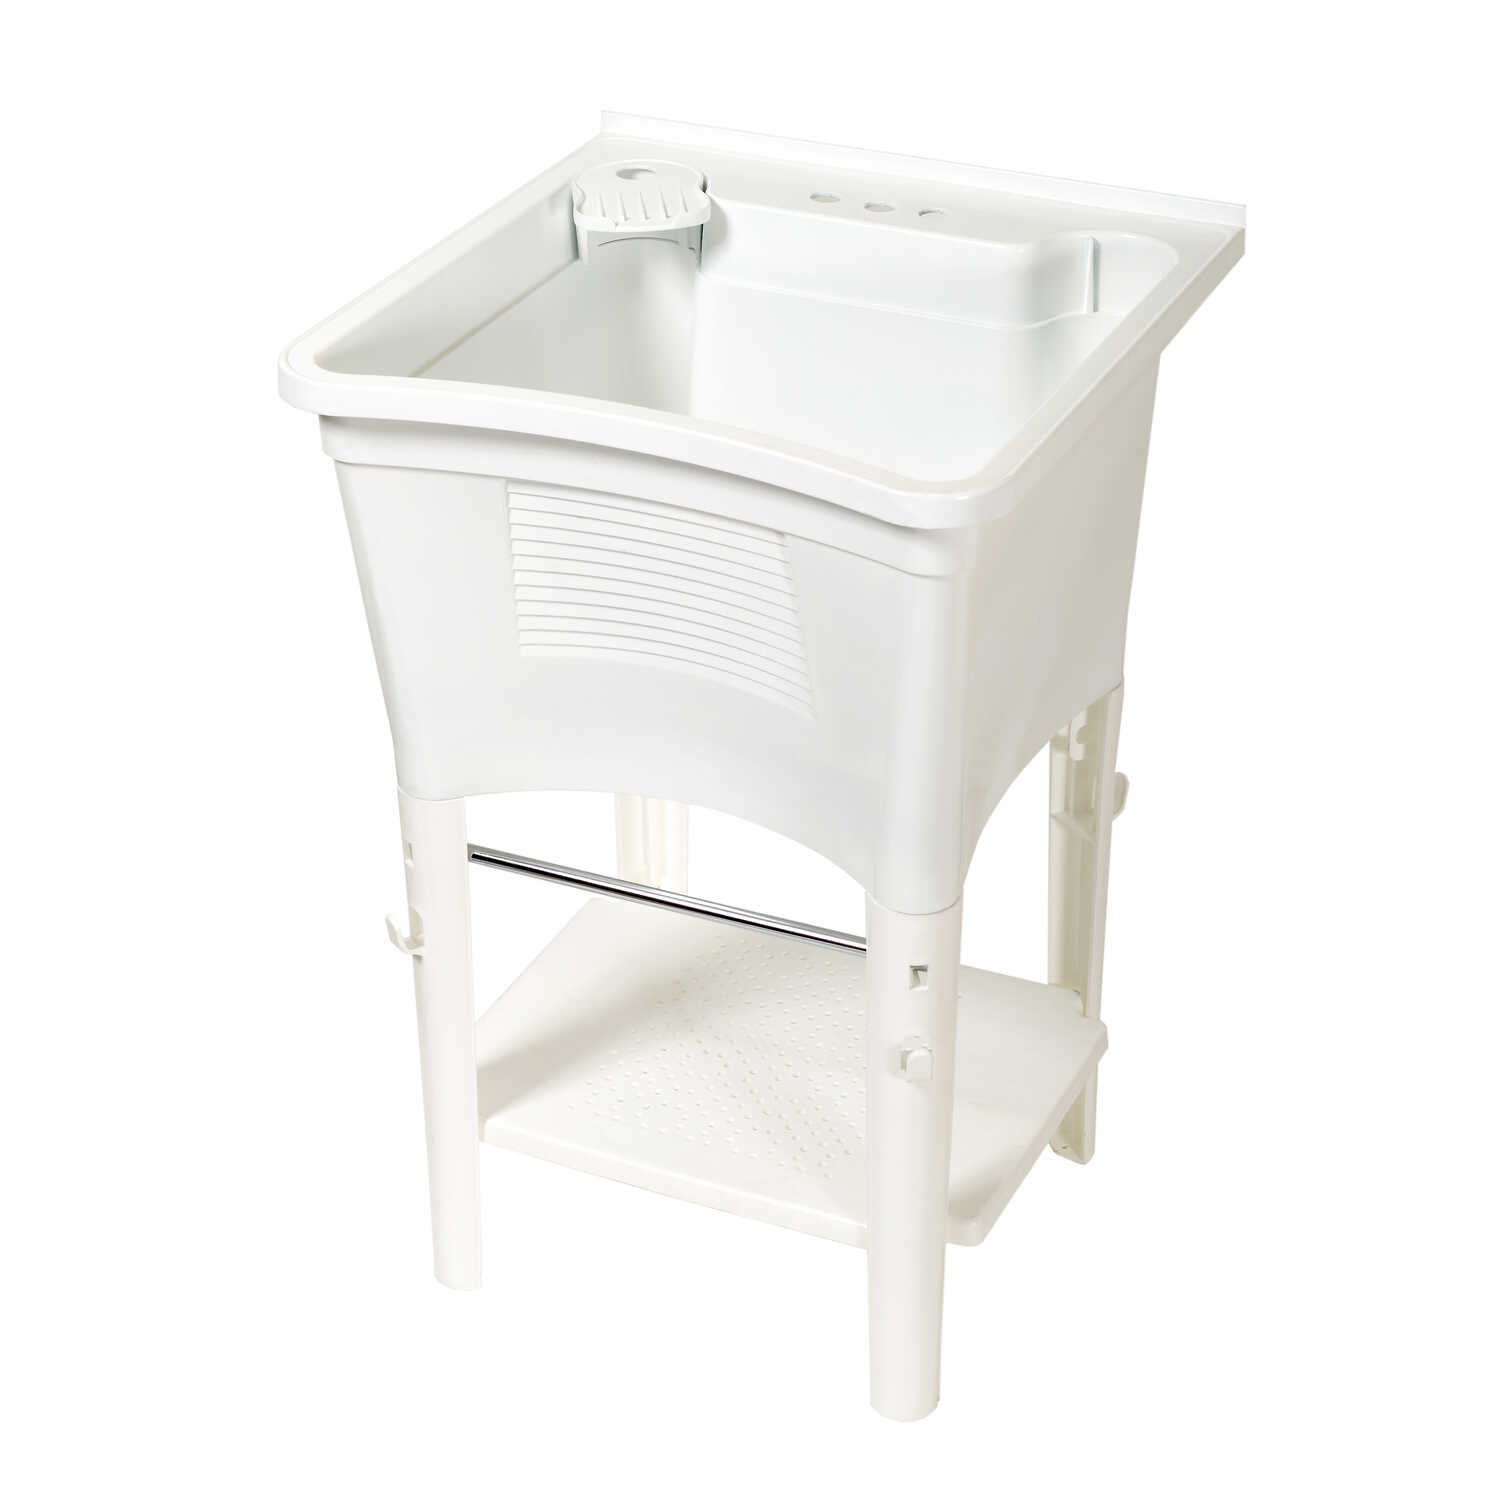 Zenith  Single  Composite  Laundry Tub